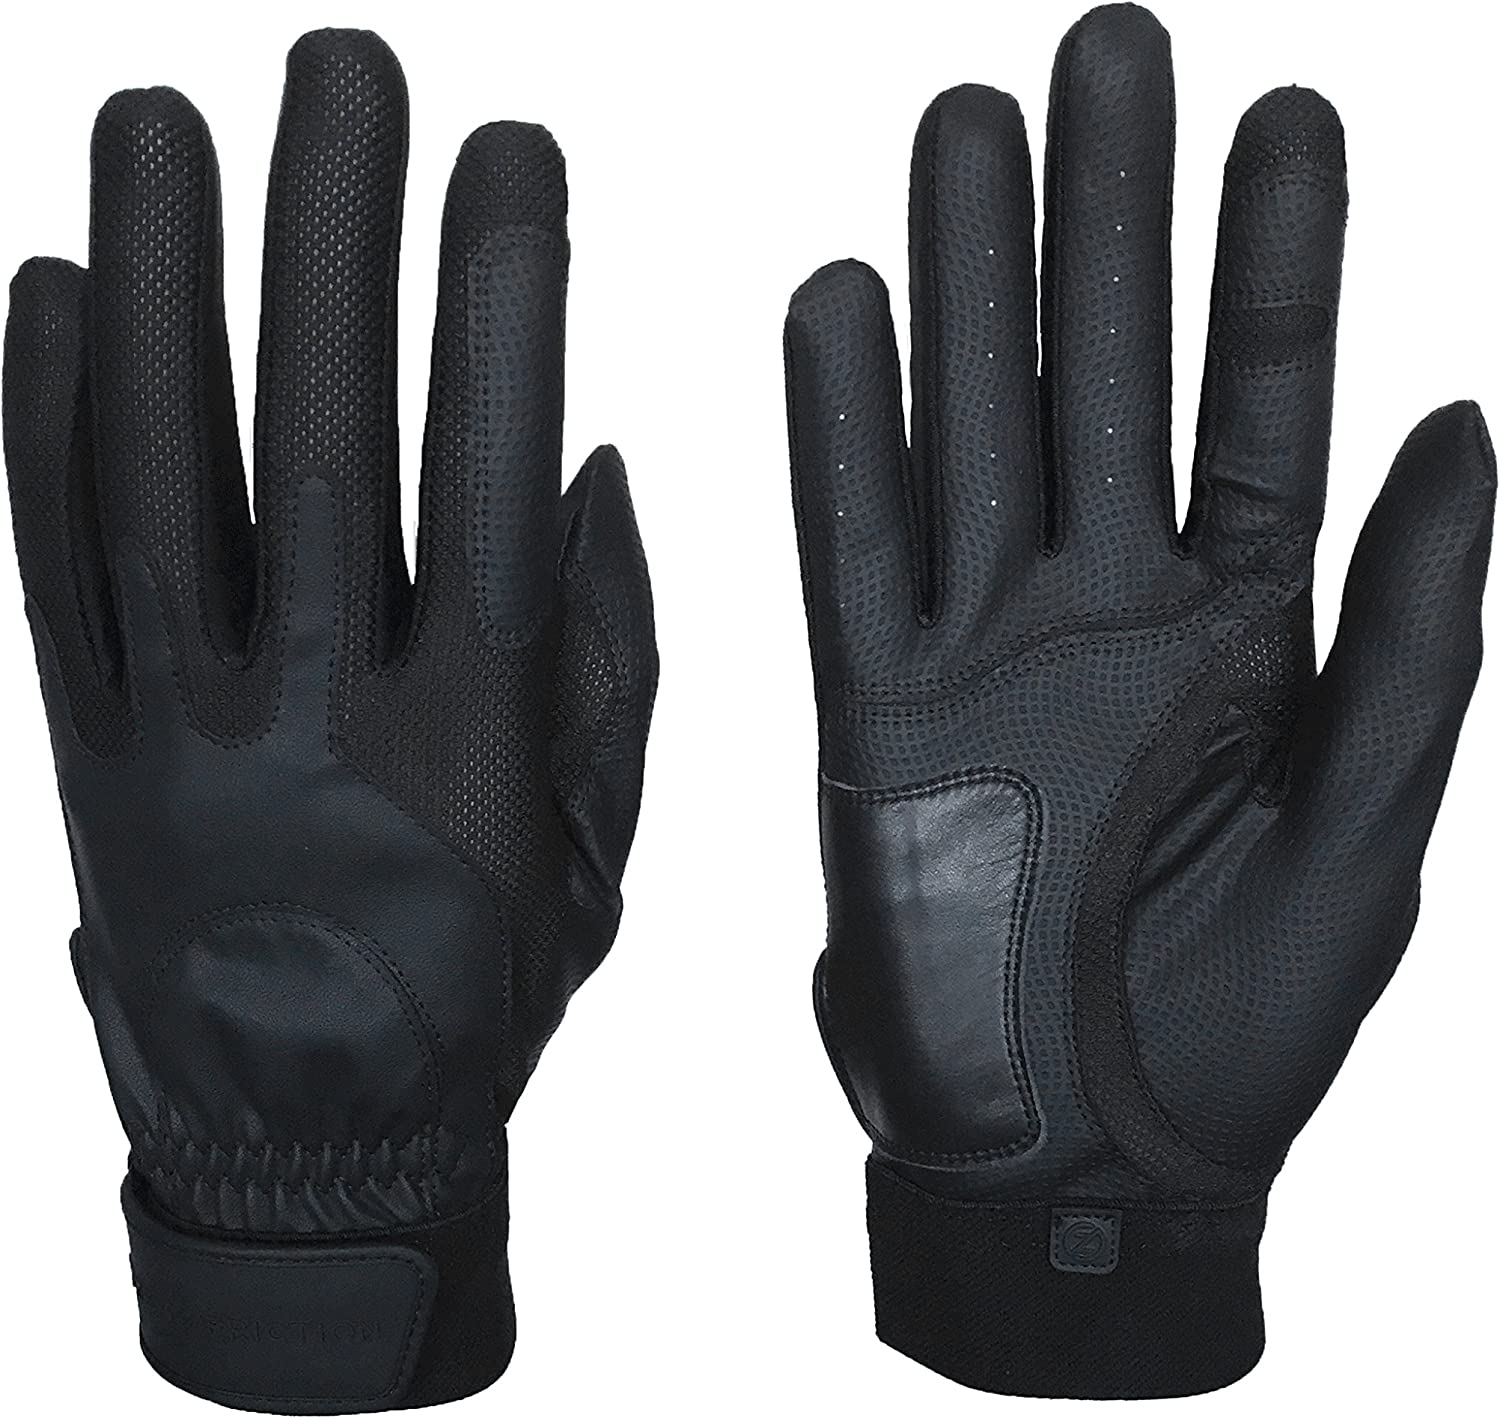 Zero Friction Sportsman's Gloves Selling Great New popularity Hunting for Fishing Ca